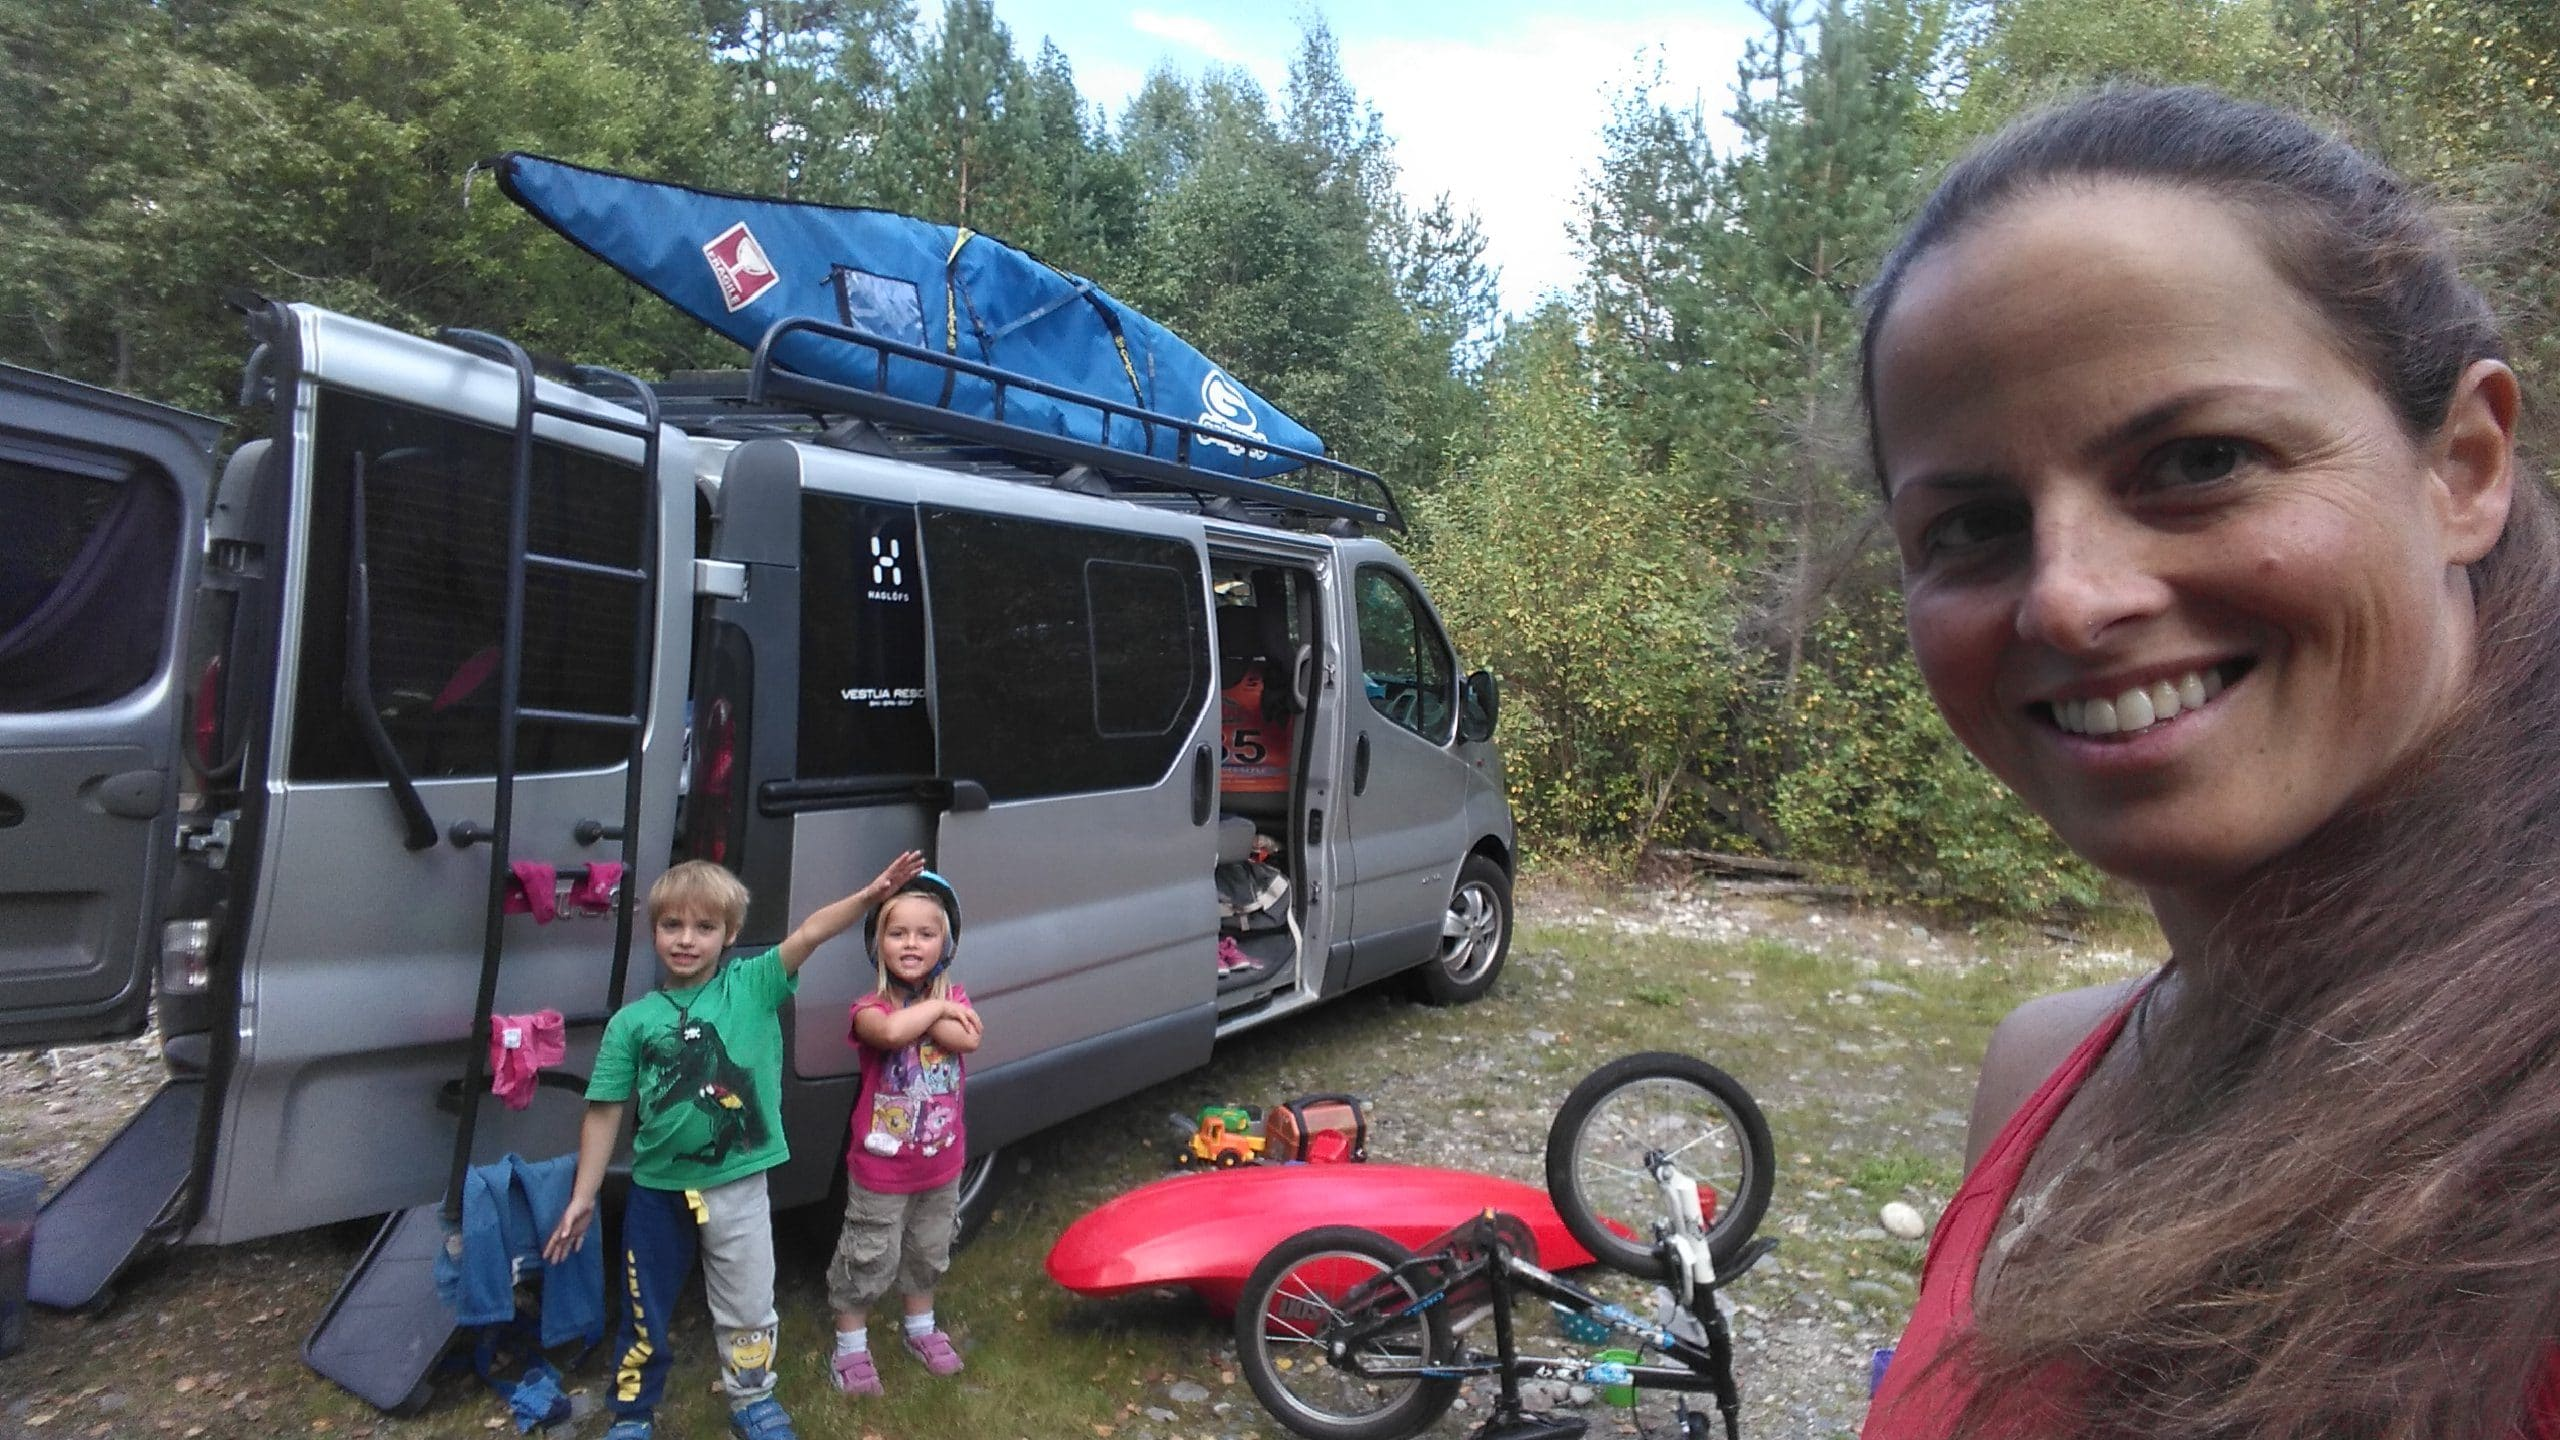 A (mom) pro-paddler's perspective